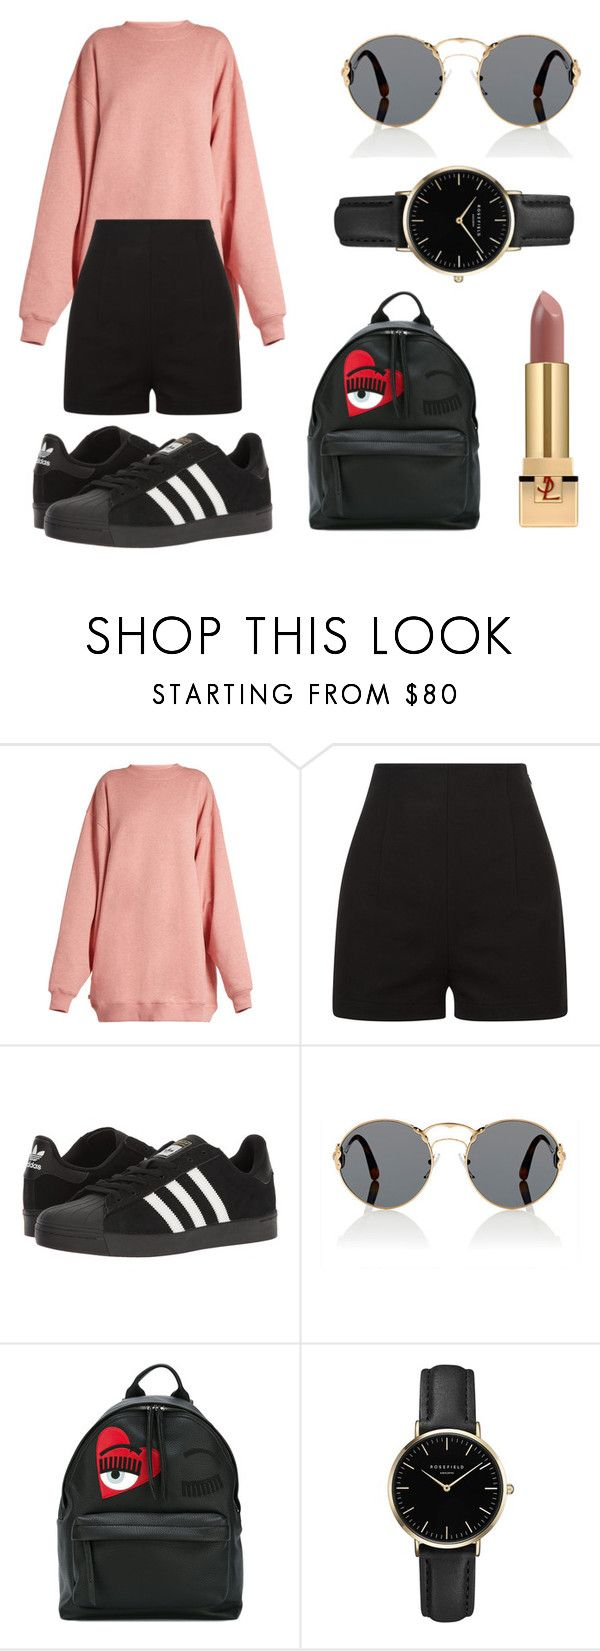 """Untitled #338"" by fashion-with-dudette on Polyvore featuring Acne Studios, adidas, Prada, Chiara Ferragni, ROSEFIELD and Yves Saint Laurent"